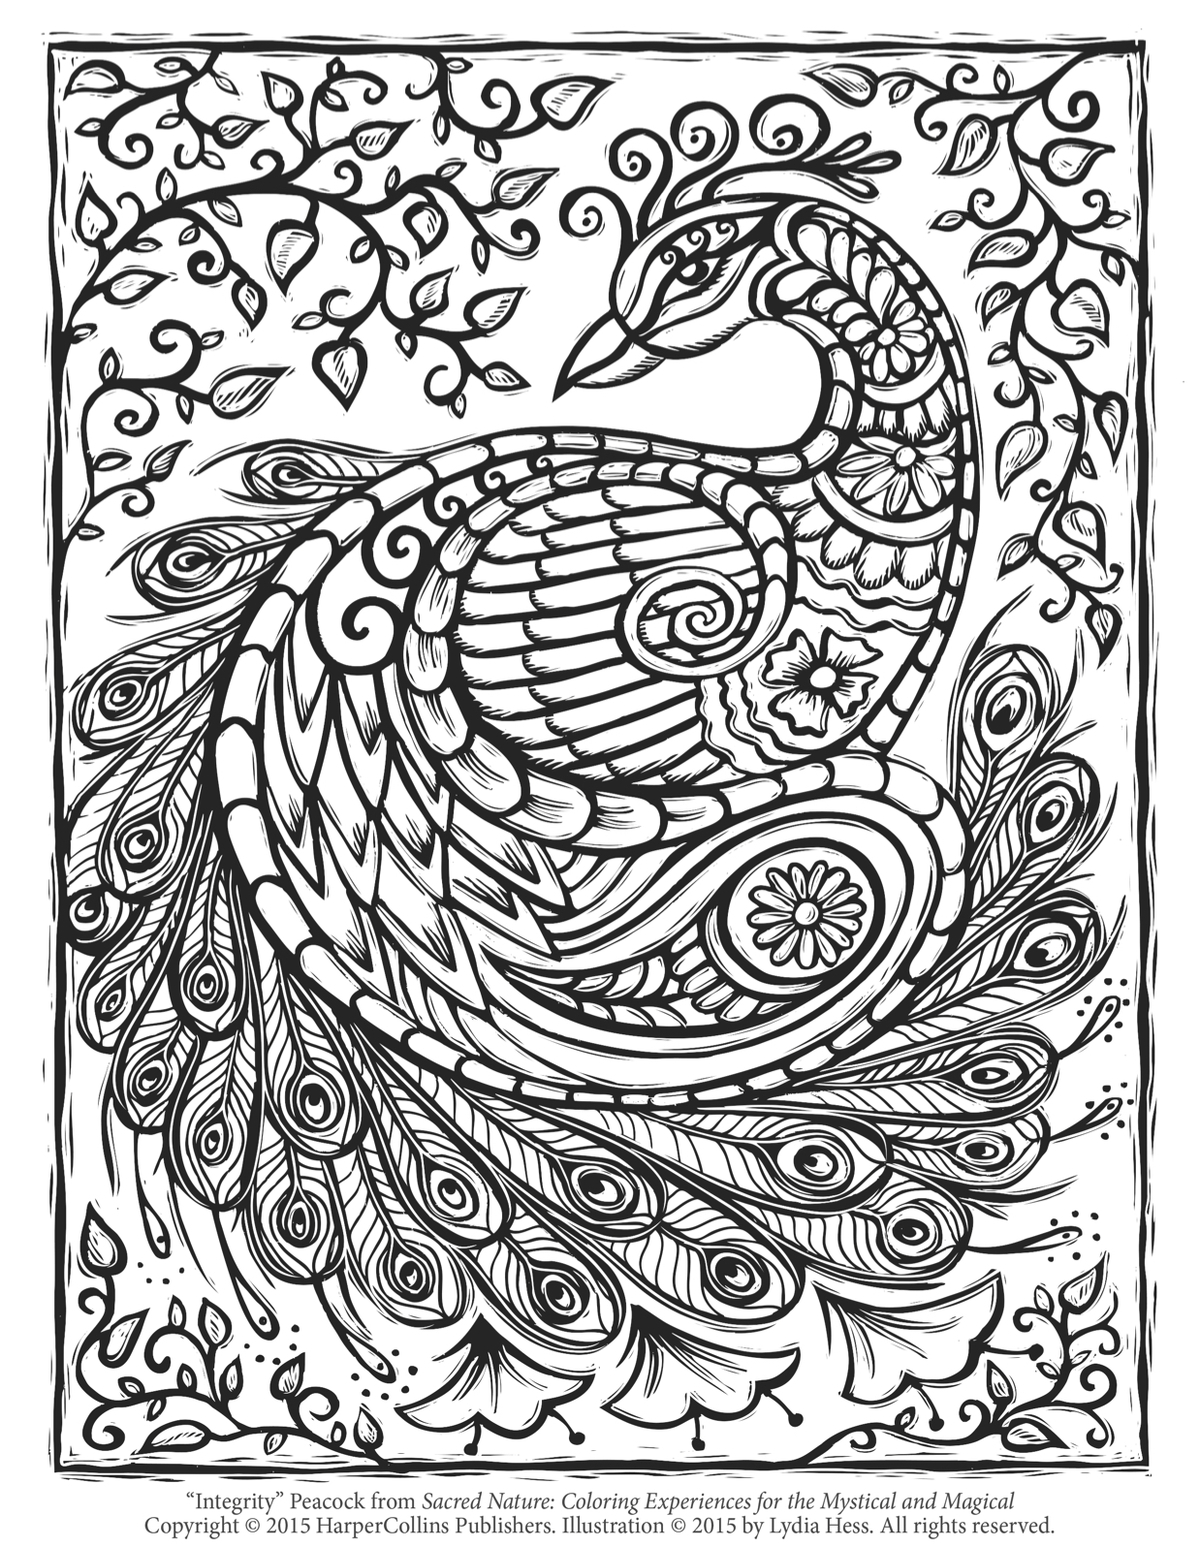 peacock coloring images peacock coloring pages to download and print for free coloring peacock images